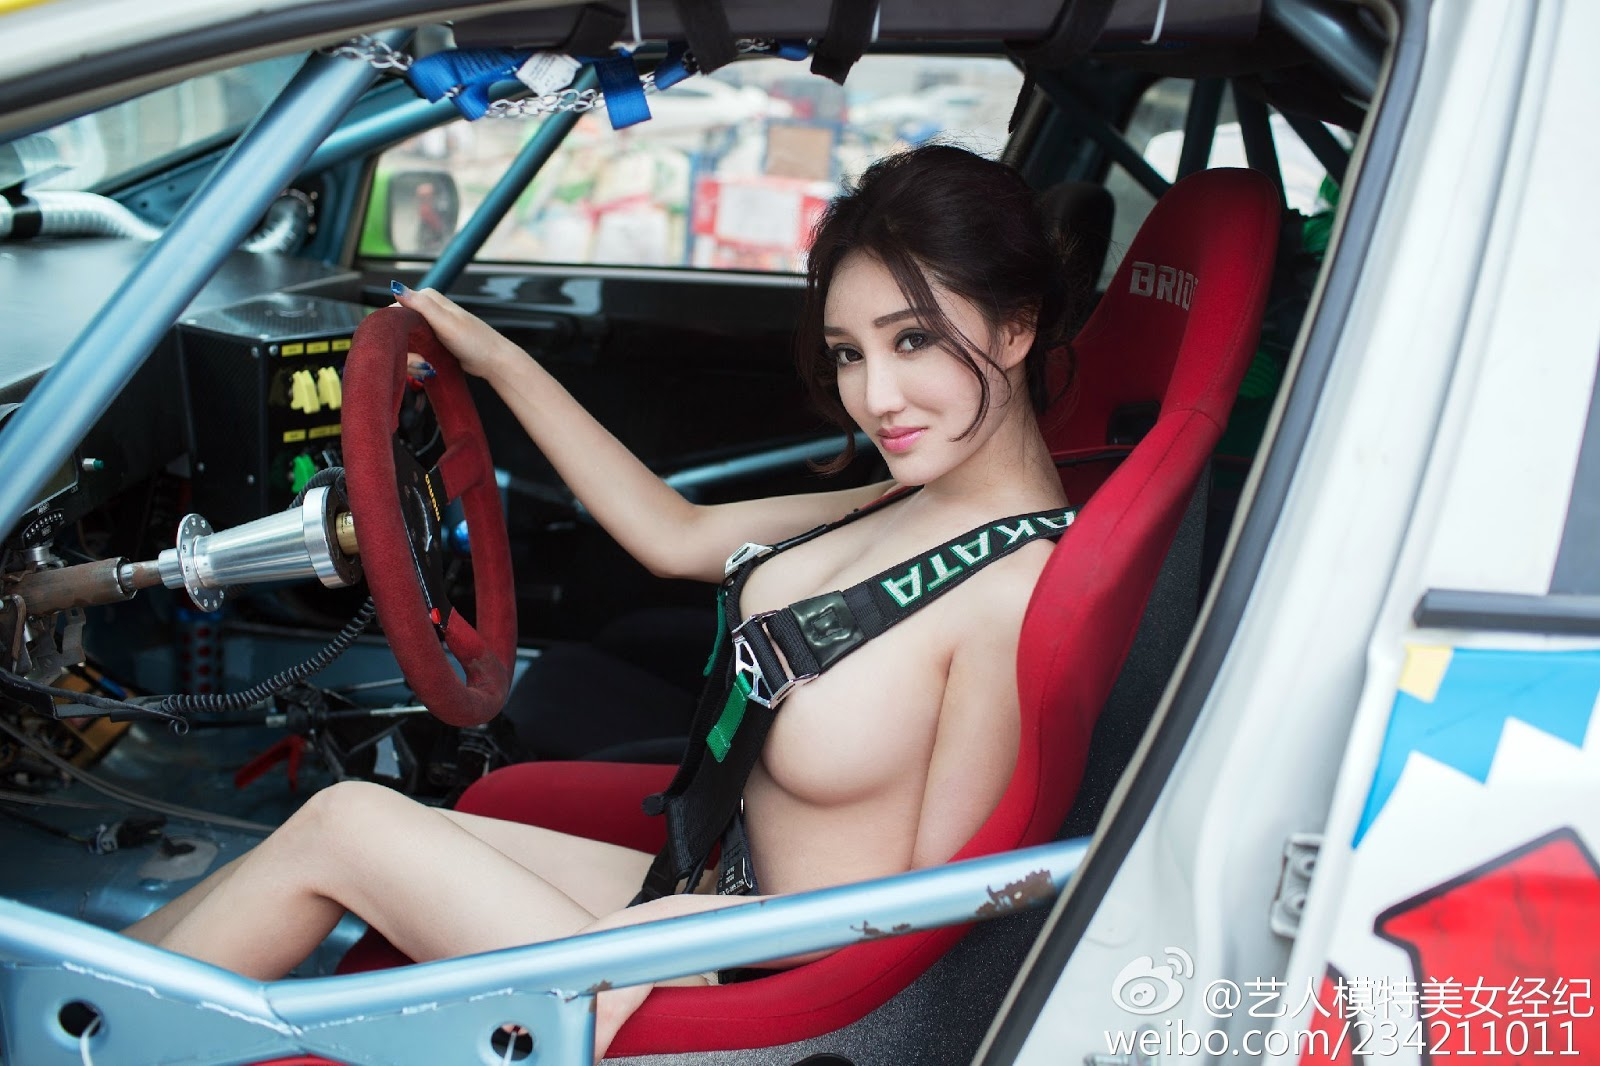 Big Breast Mai Ping Guo 麦苹果 Motor Show Less Panties See Pink Nipples